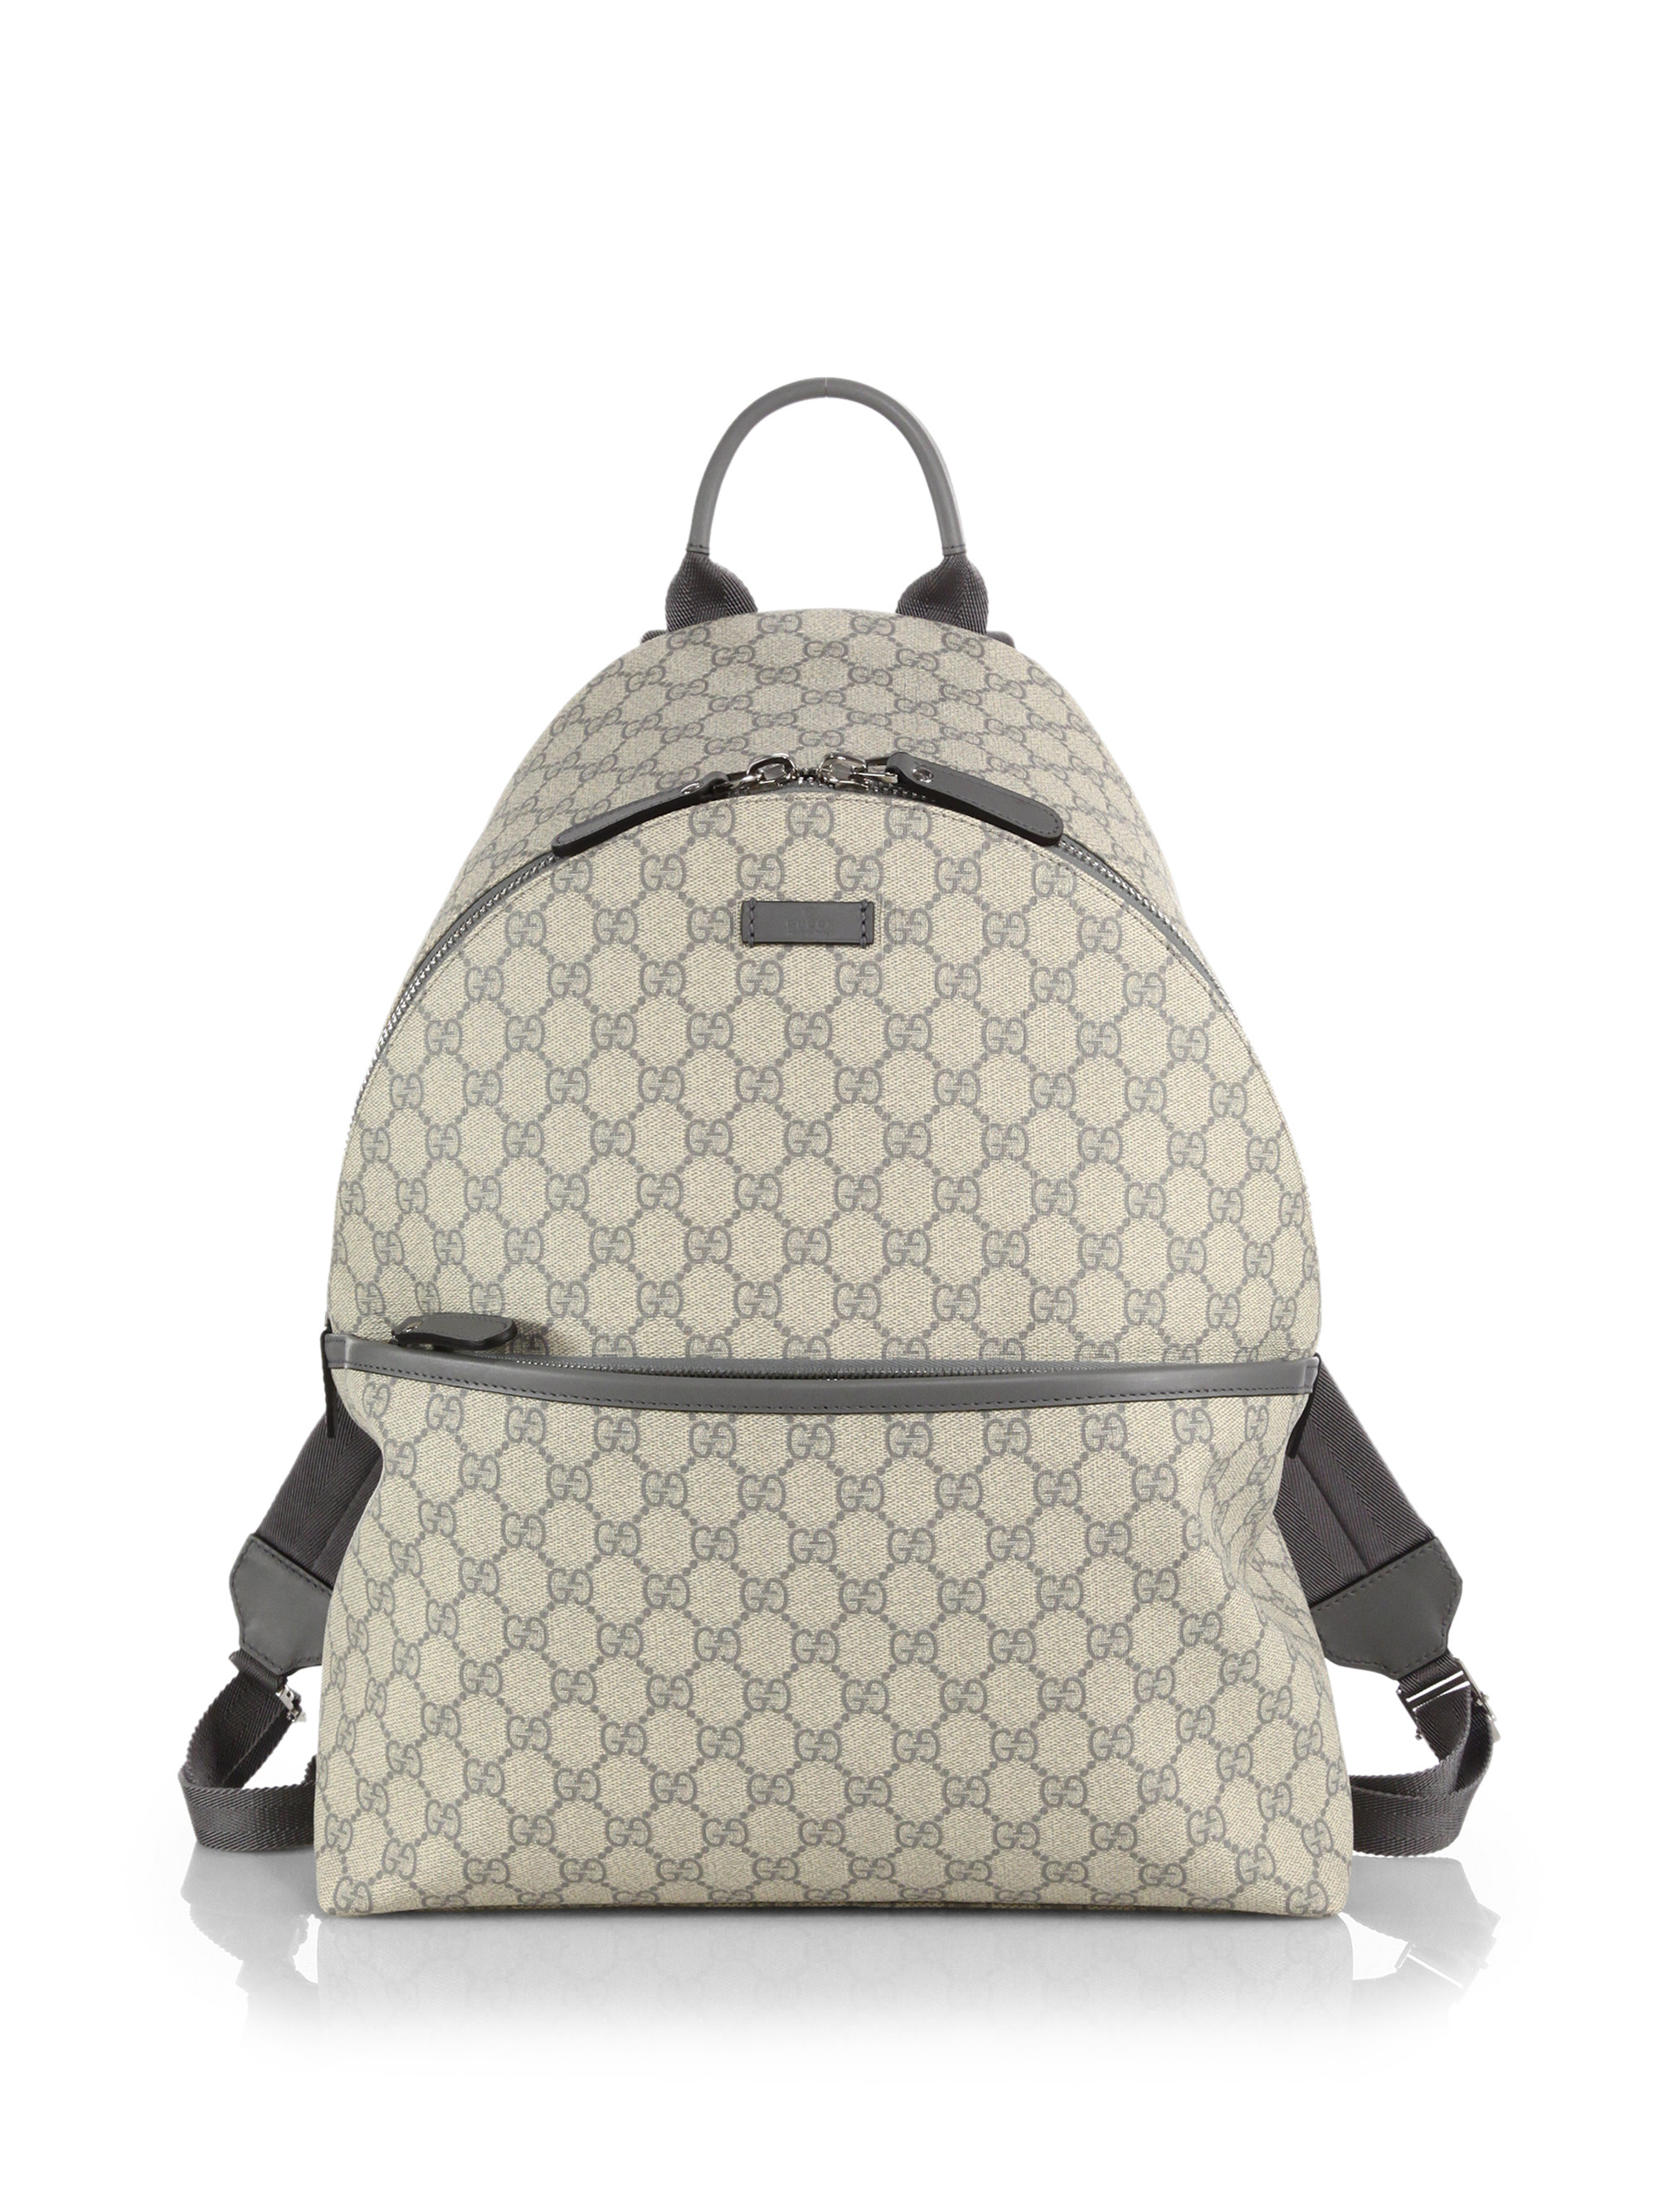 Lyst - Gucci Gg Supreme Canvas Backpack in Gray for Men 4d7911fefd